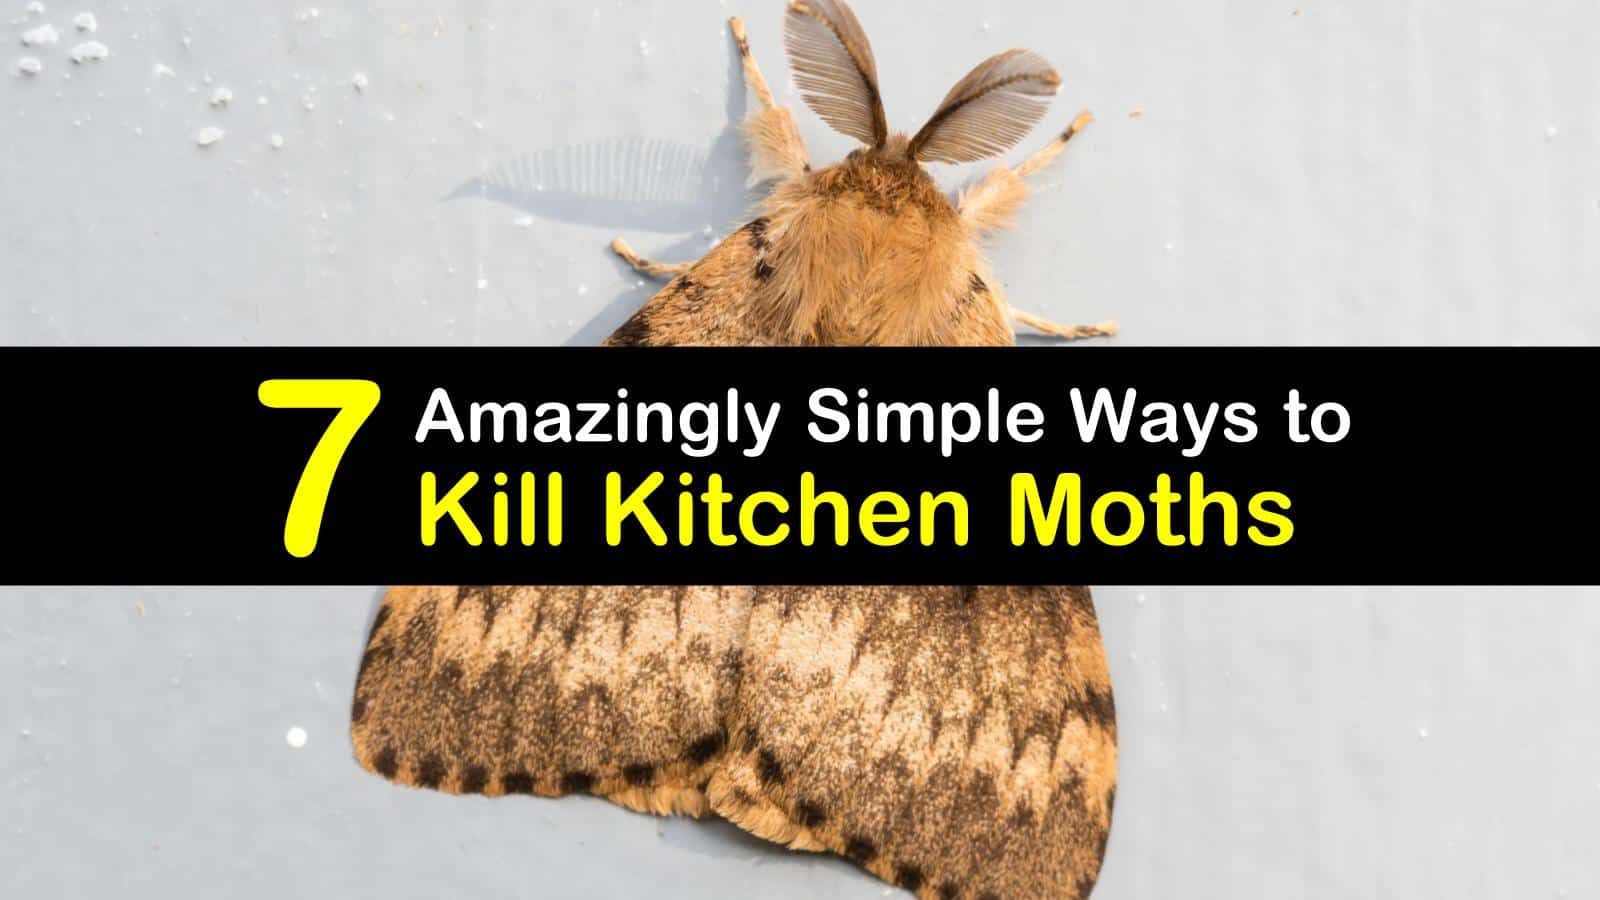 7 Amazingly Simple Ways To Kill Kitchen Moths